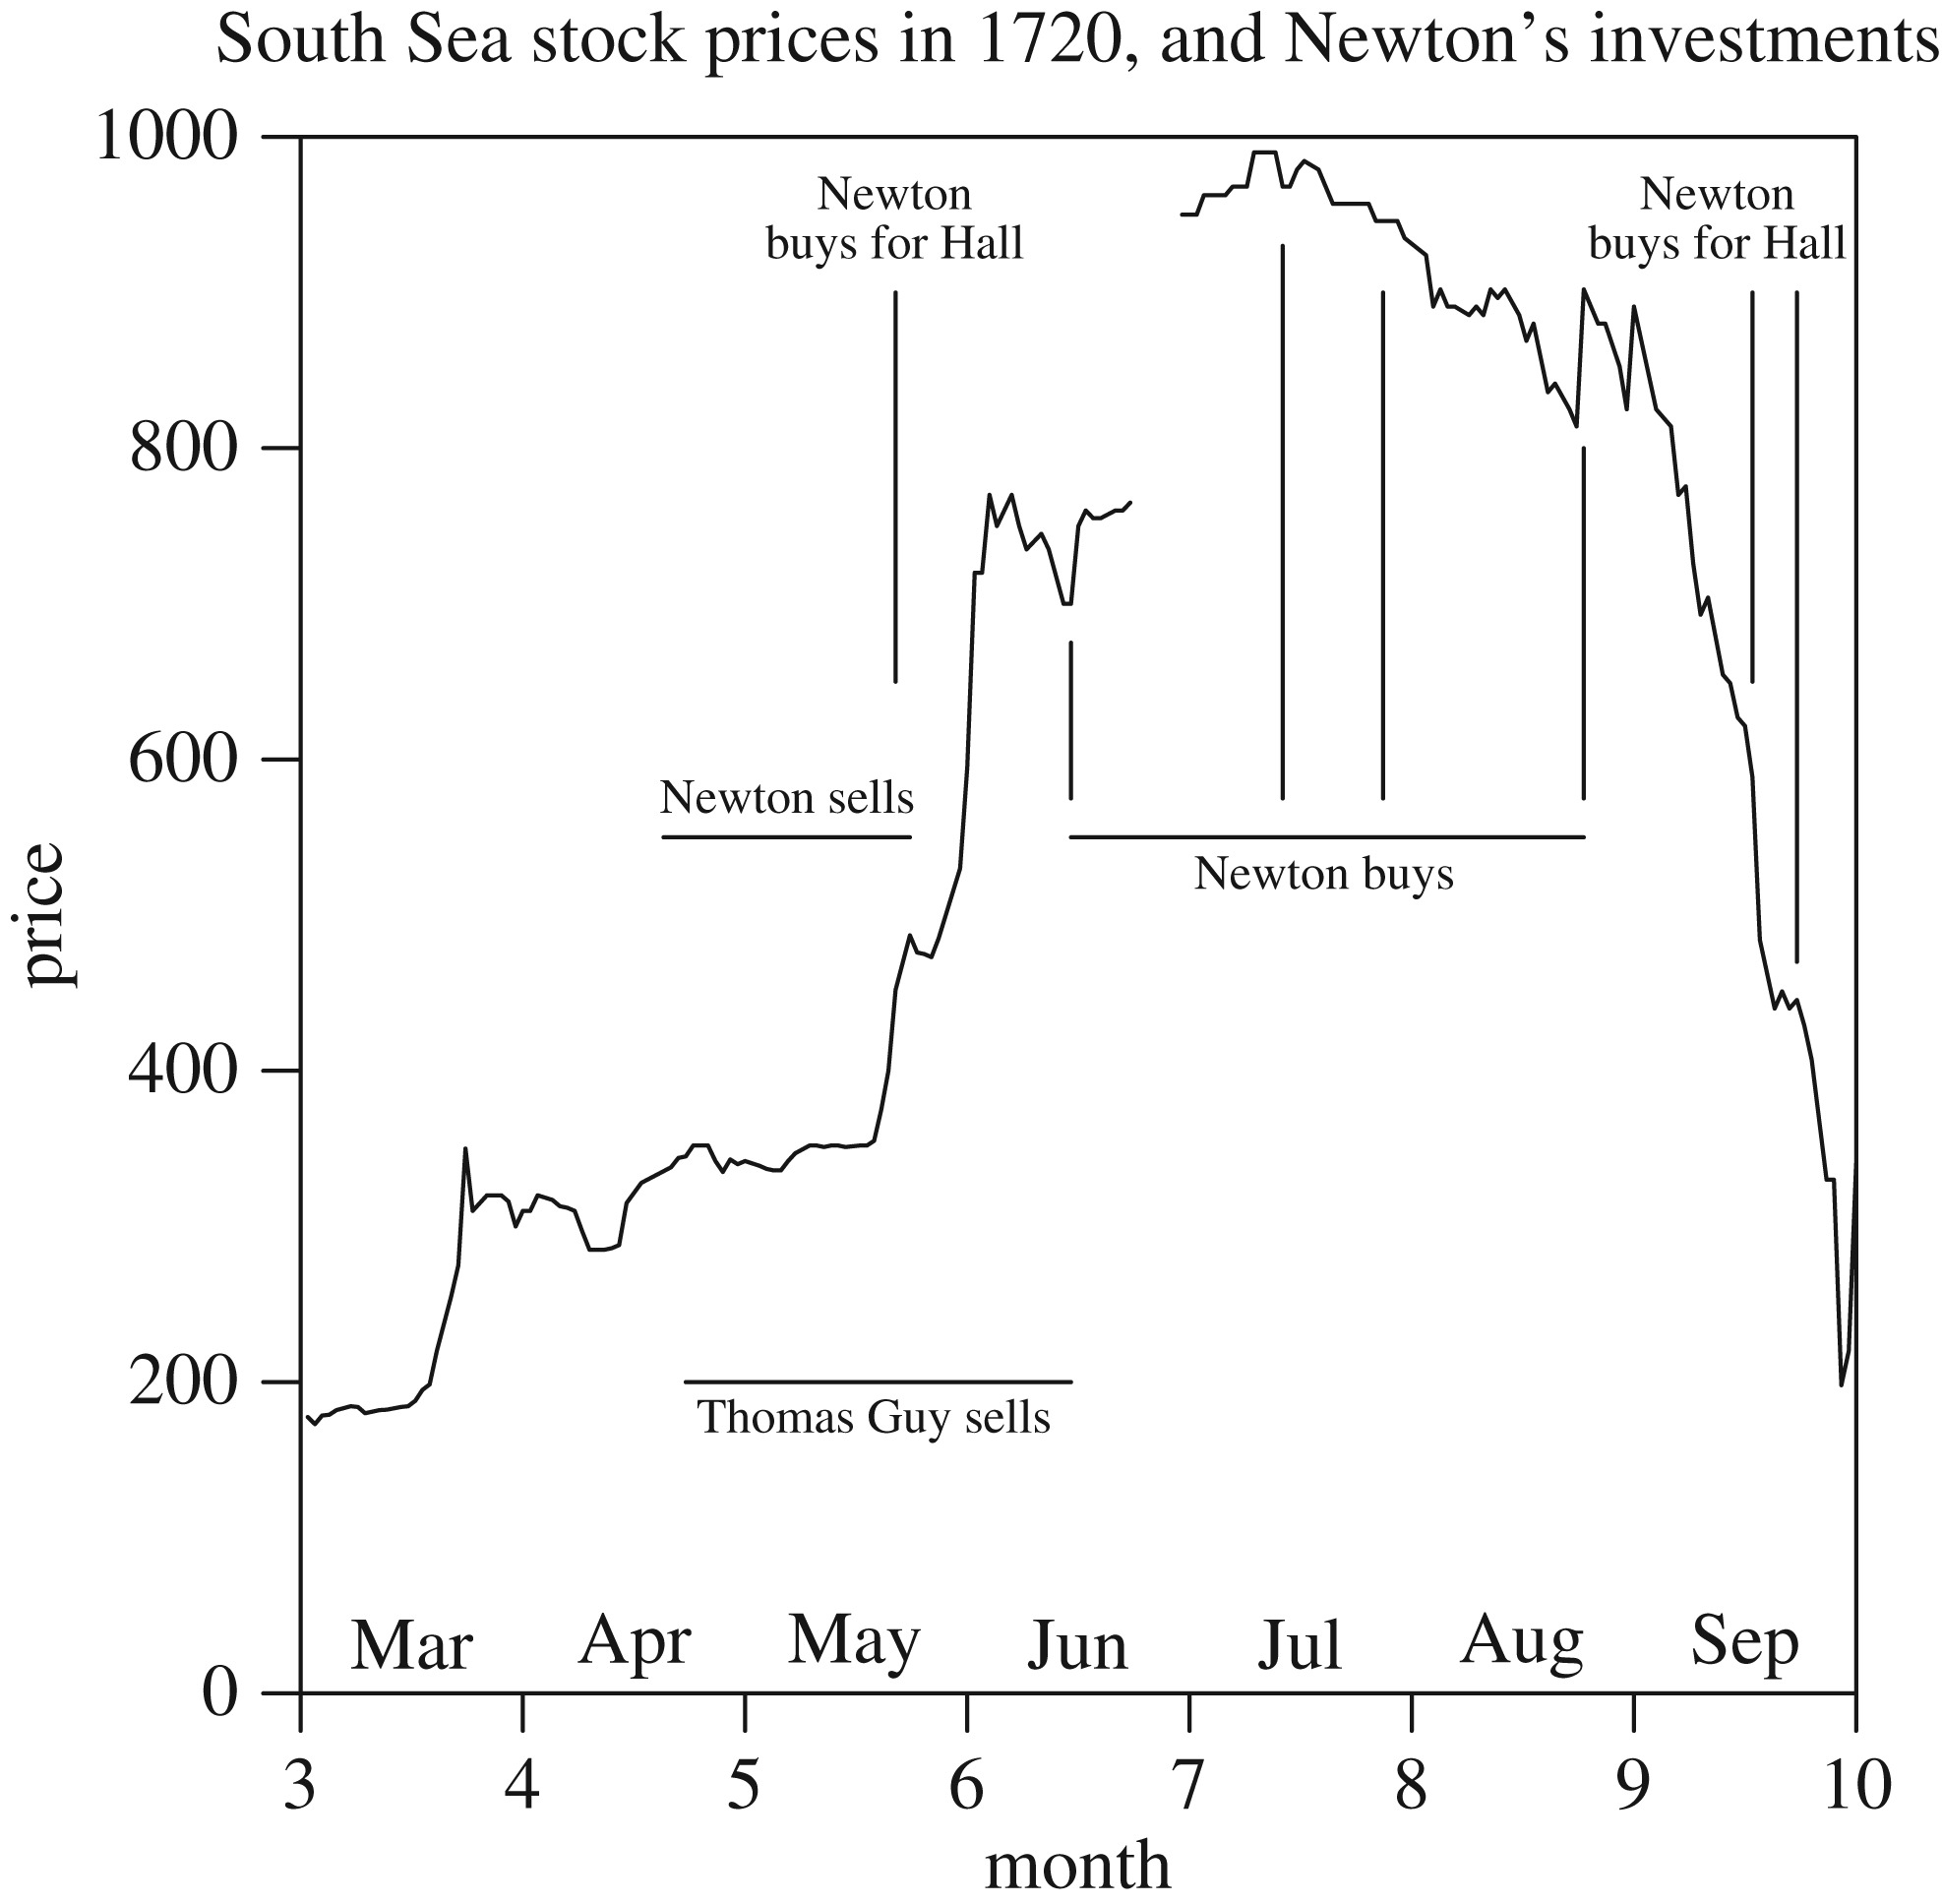 Newton's financial misadventures in the South Sea Bubble